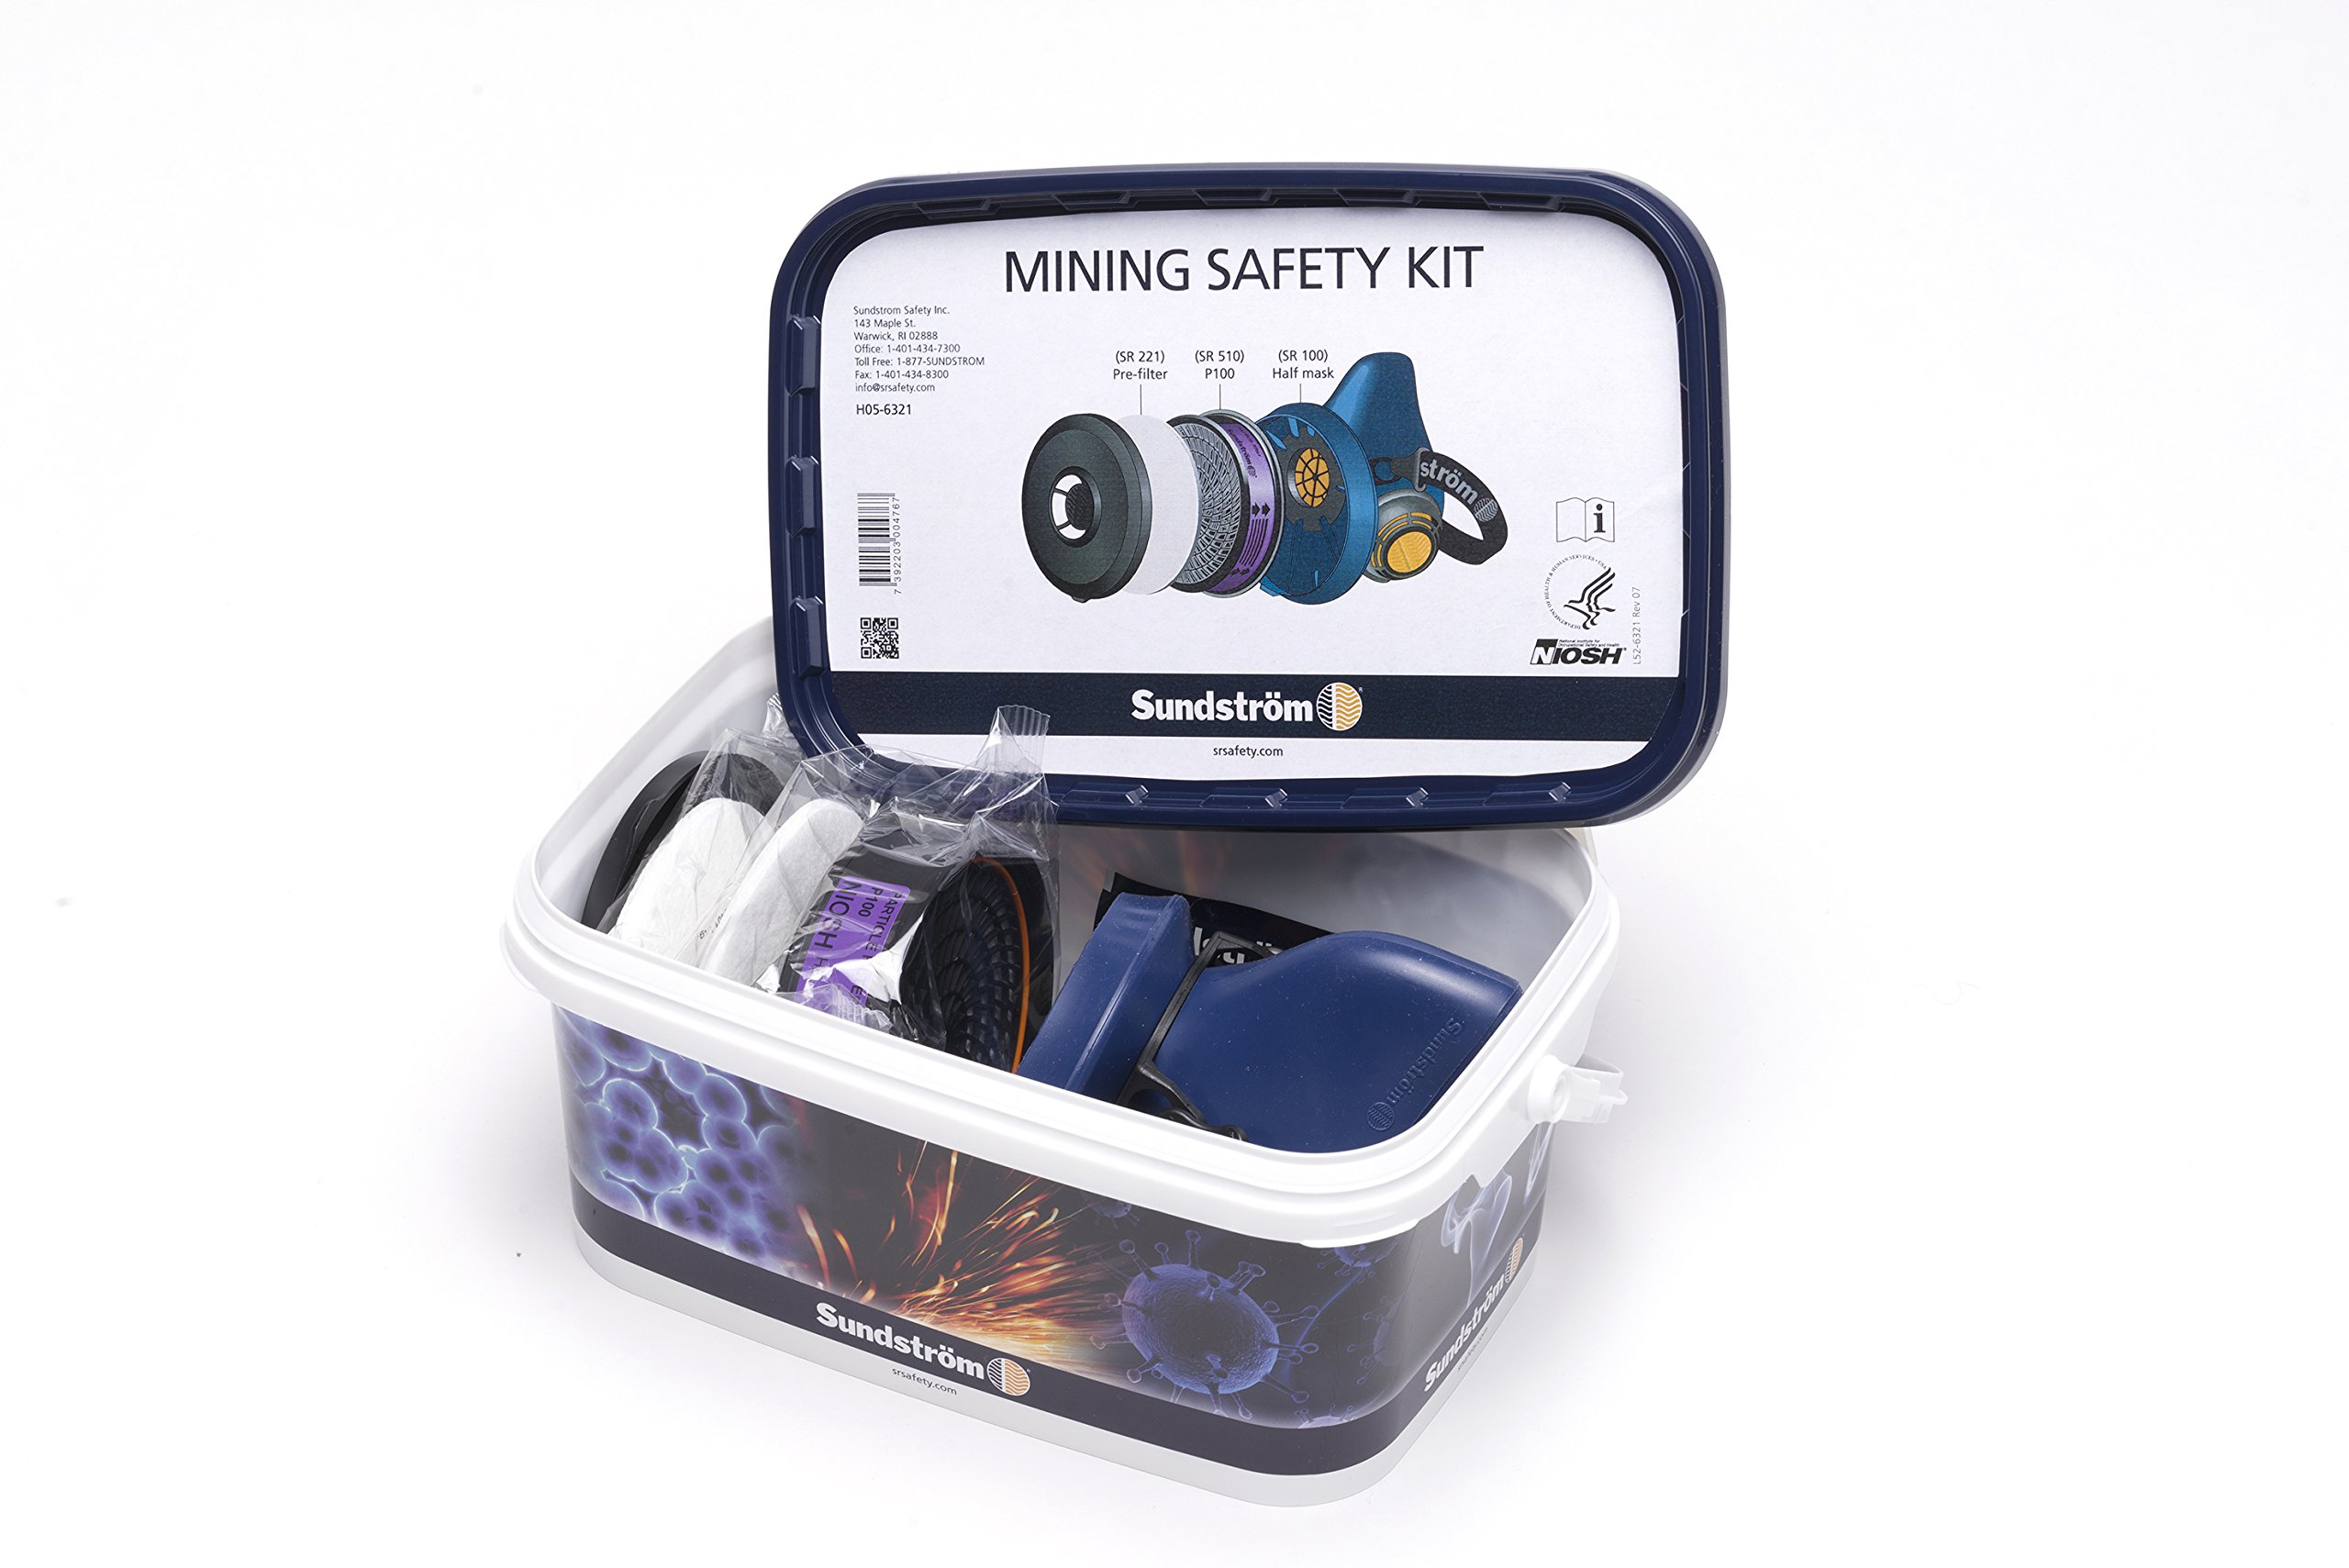 Sundstrom H05-6321M Mining Safety Respirator Kit with SR 100 M/L Silicone Half Mask, P100/HE Particulate Filter and Prefilters